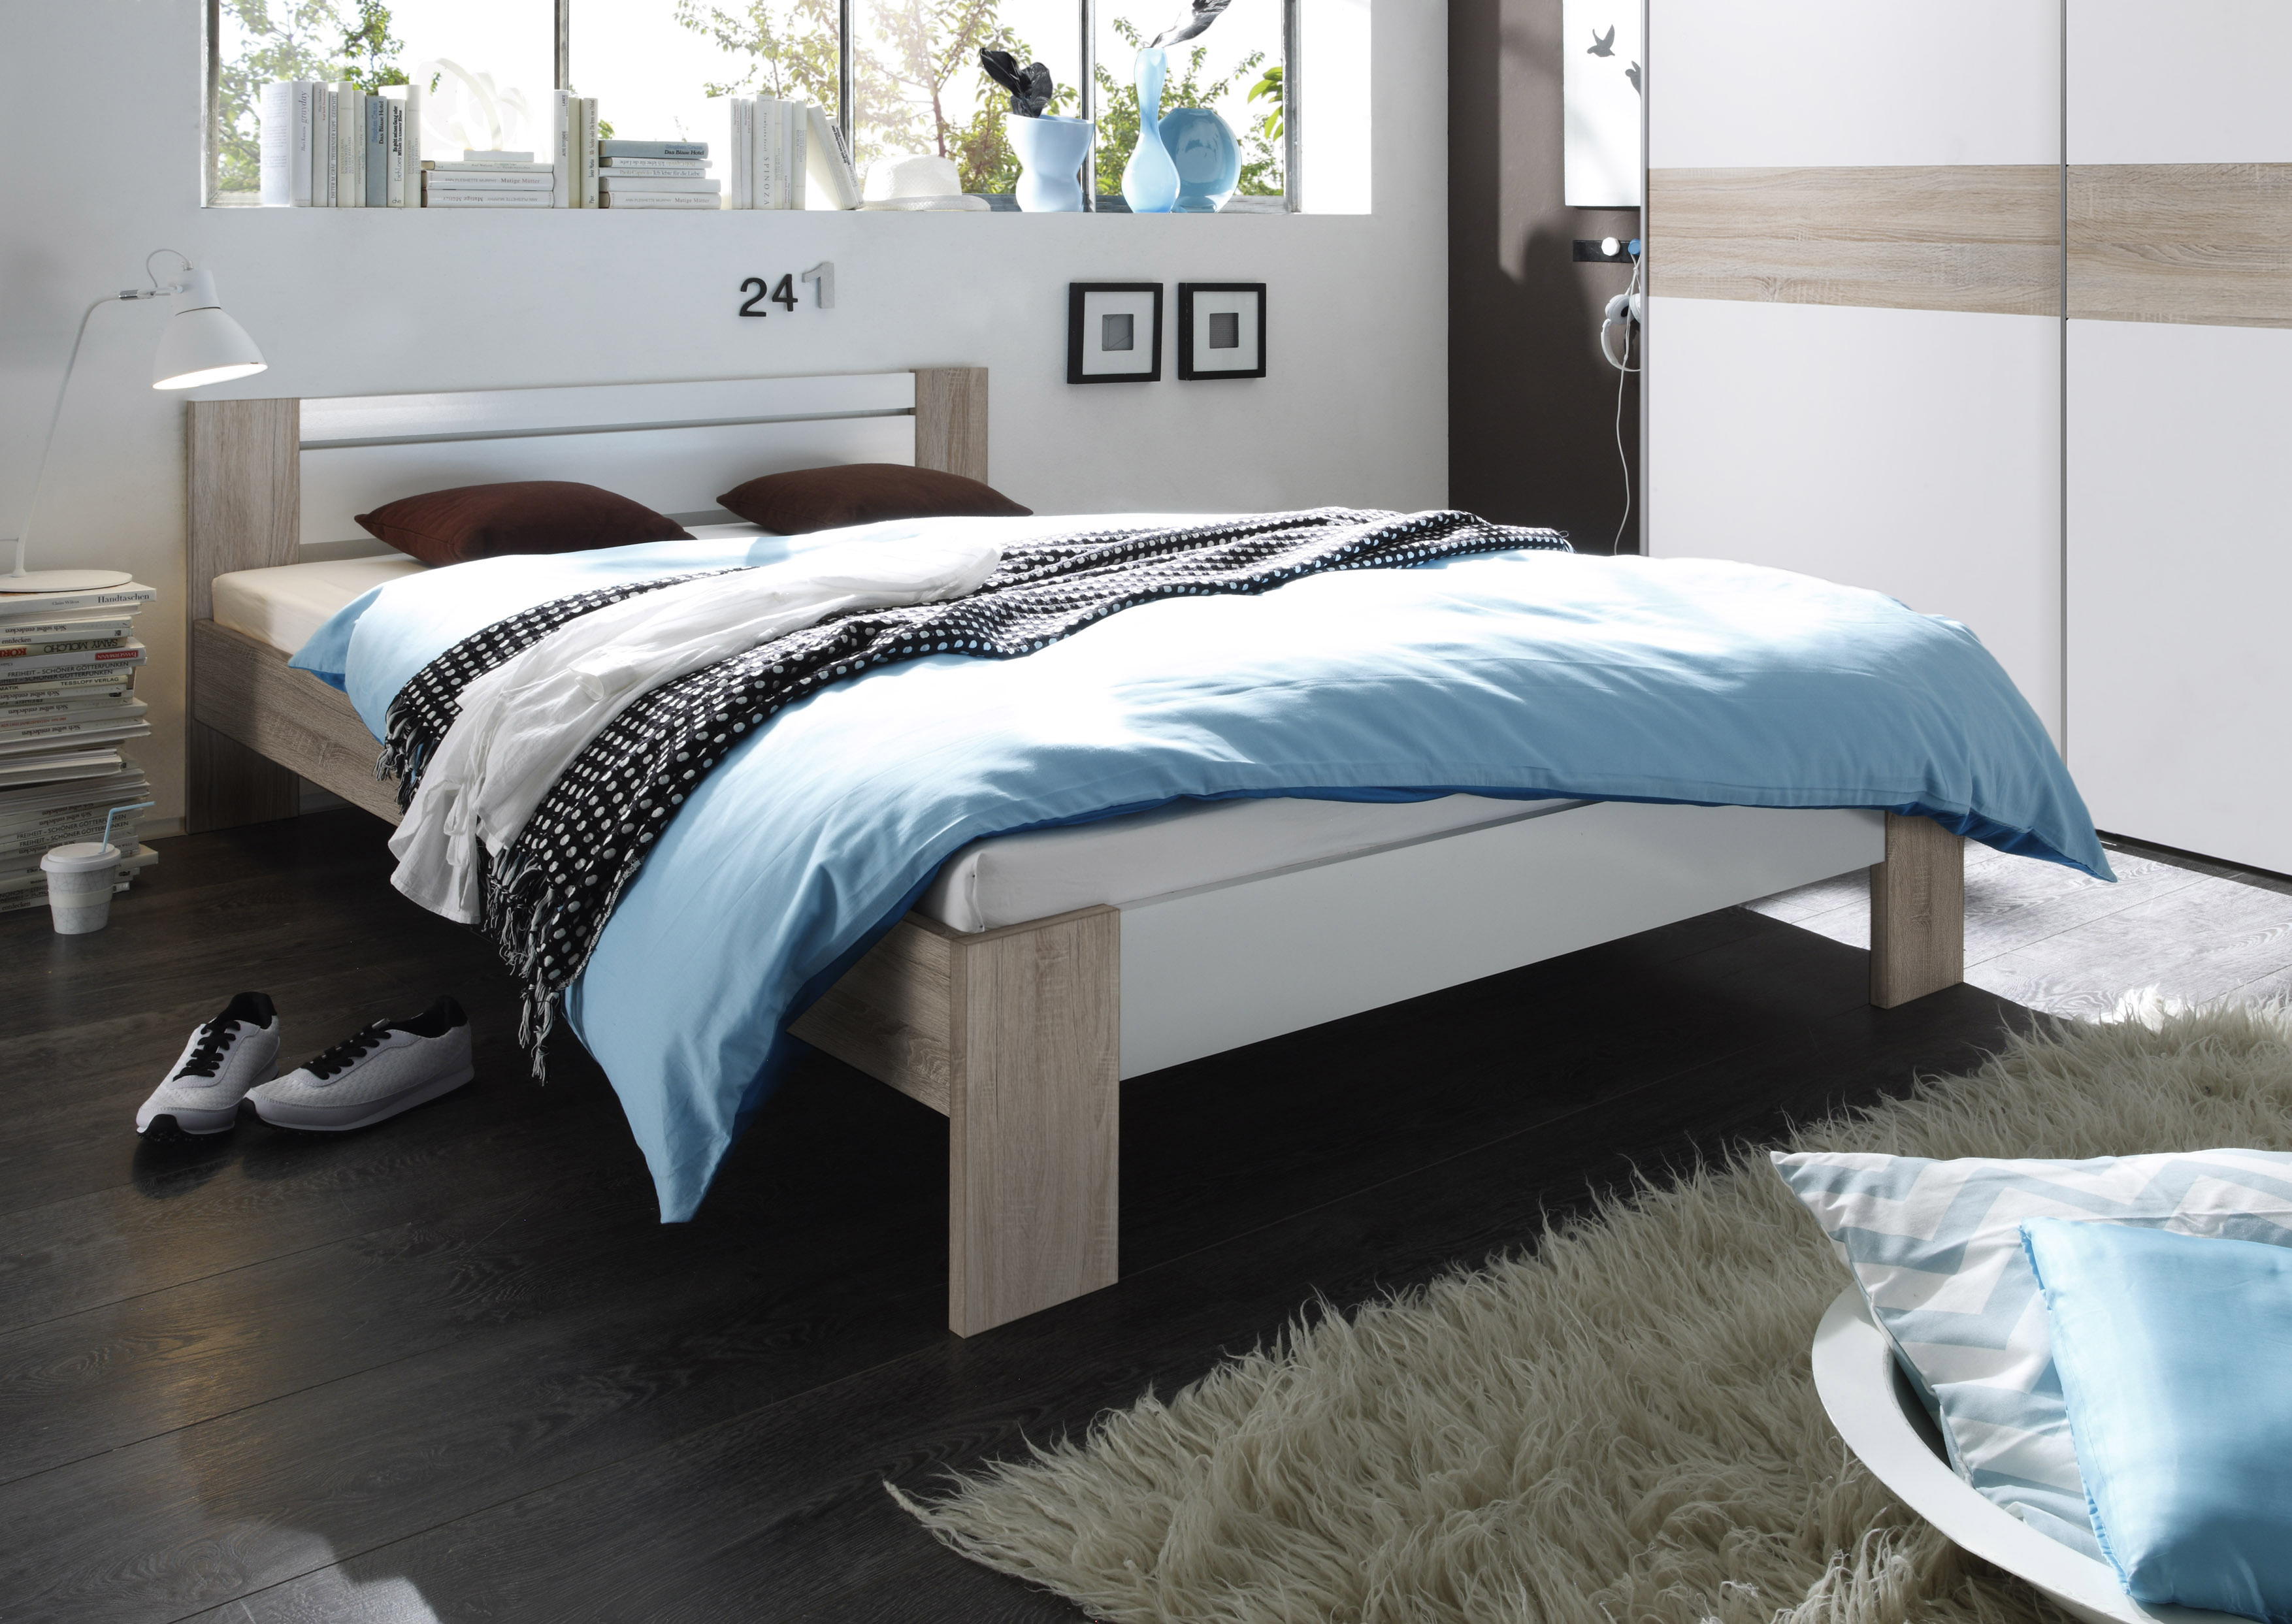 vegas komplett set futonbett 140x200 cm inkl rollrost und matratze. Black Bedroom Furniture Sets. Home Design Ideas